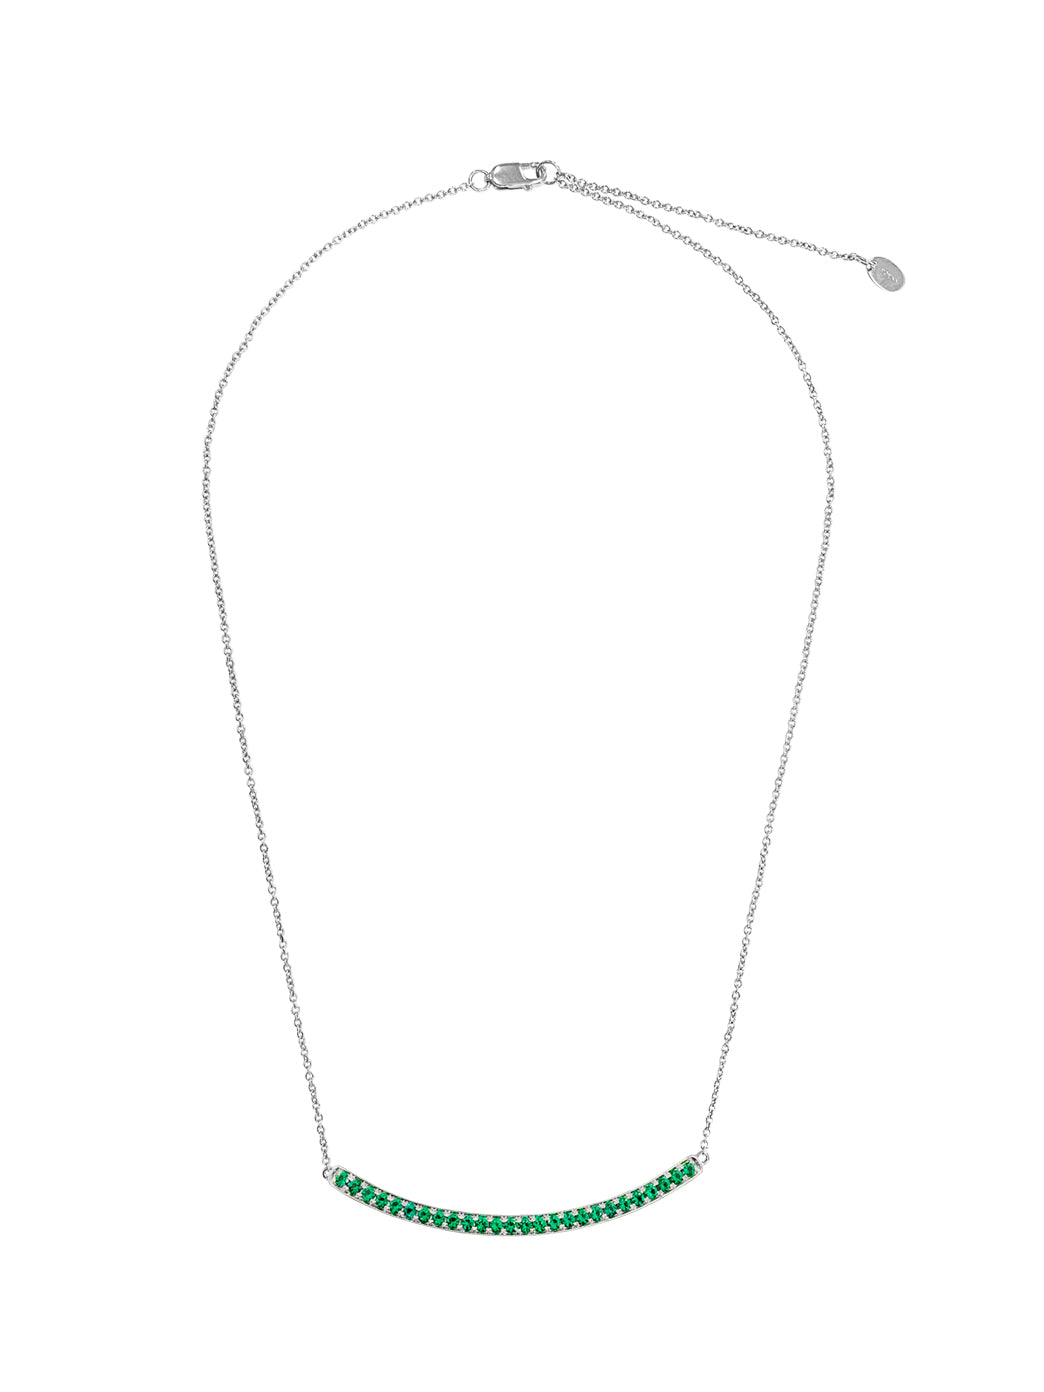 Fiorina Jewellery Arc Necklace White Gold Emerald